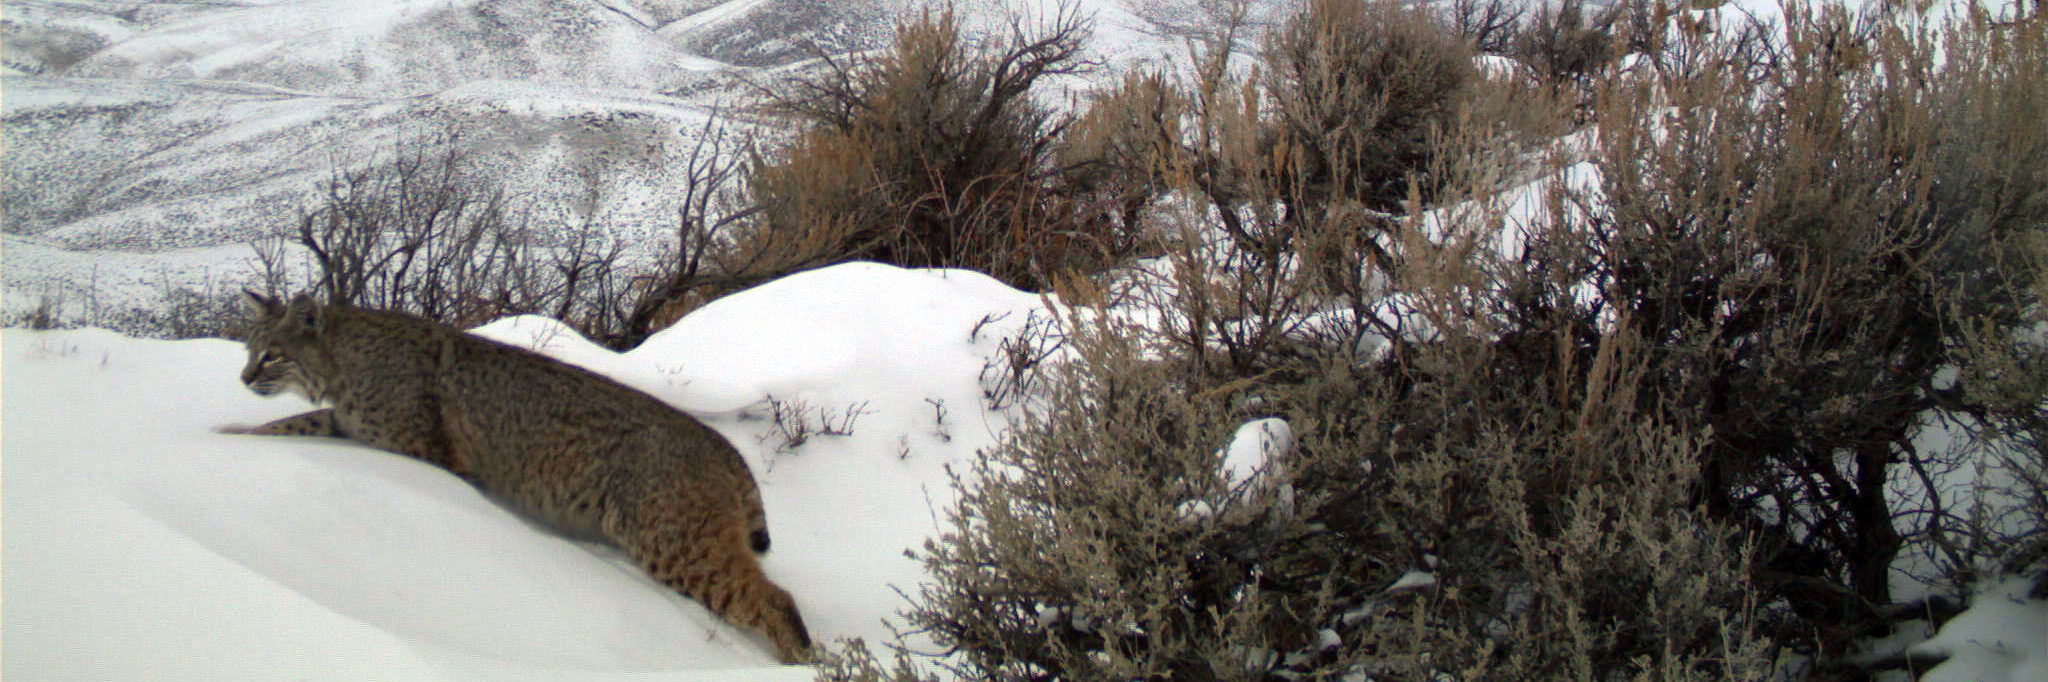 A bobcat is perched on a snowbank with sagebrush behind it.